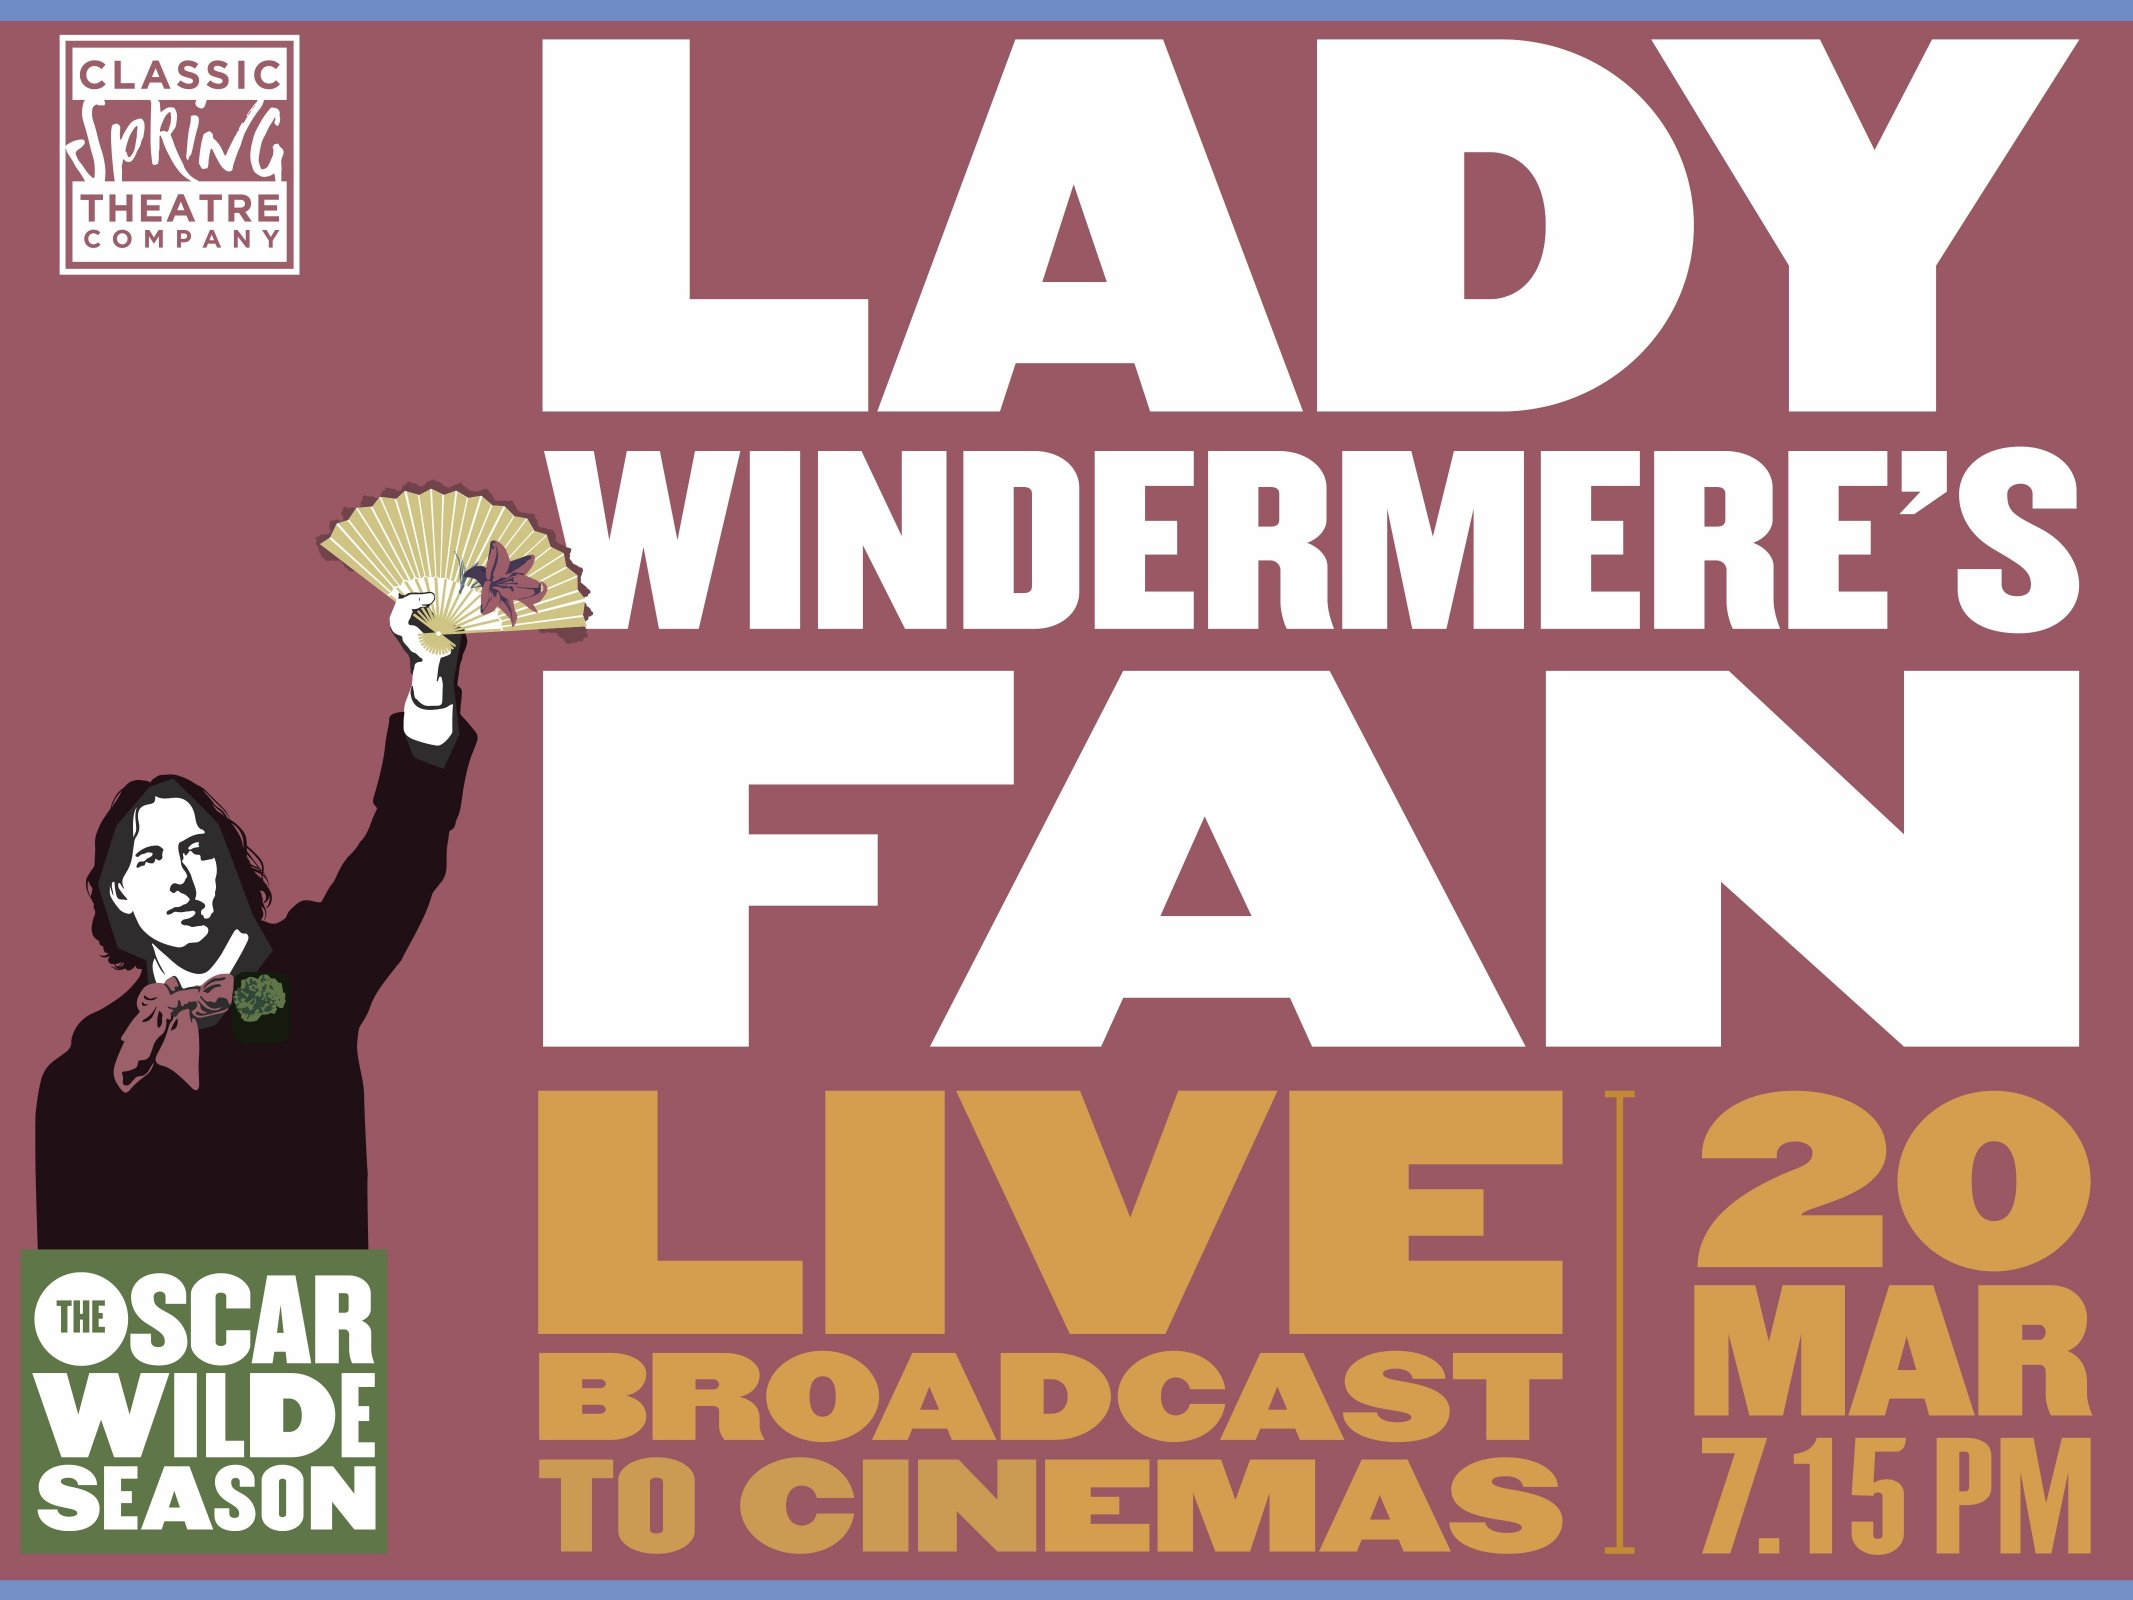 OSCAR WILDE - Lady Windermere's Fan (Live)